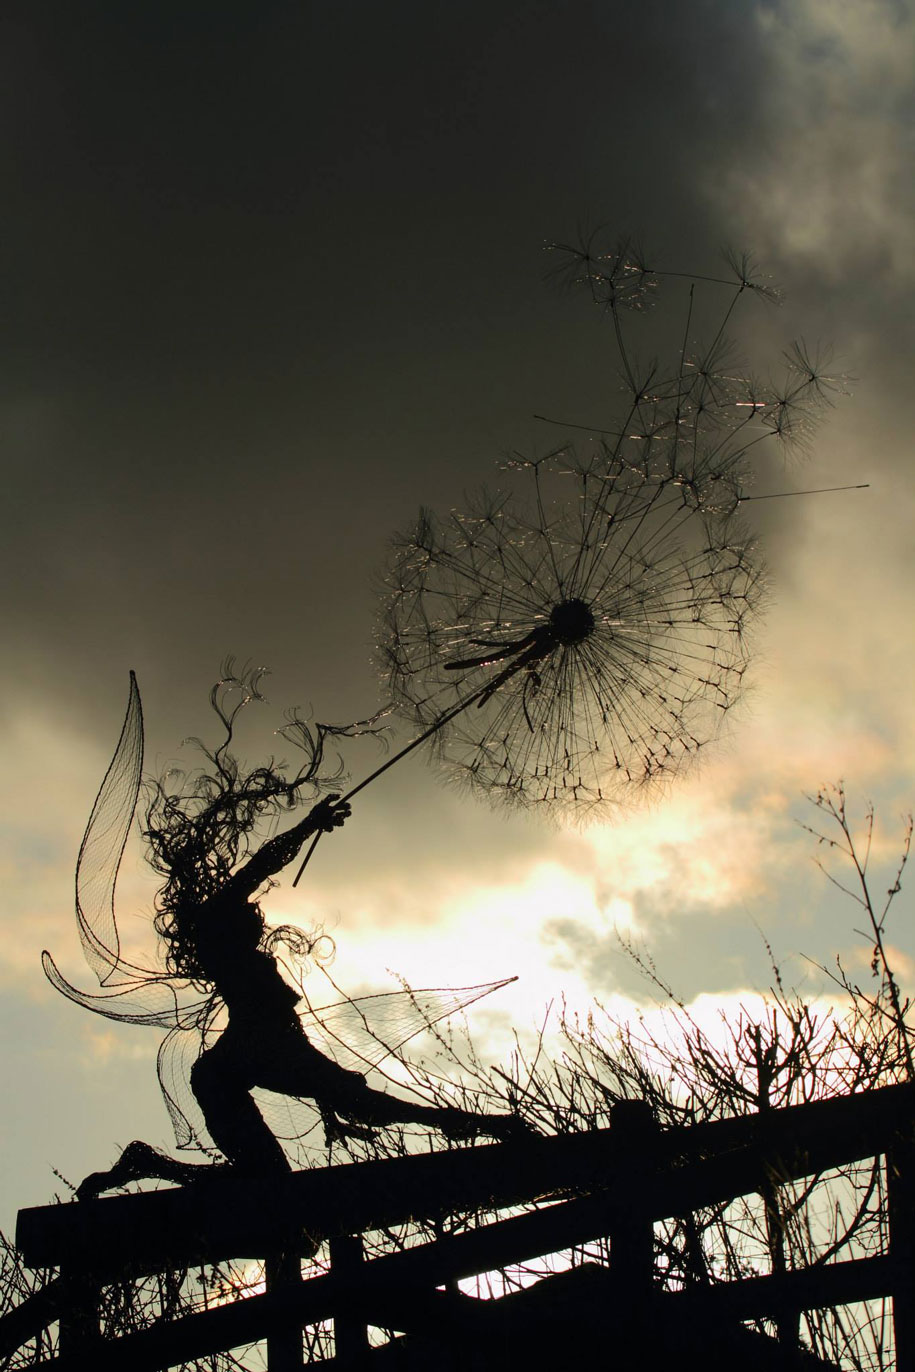 wire-fairy-dandelion-sculptures-fantasywire-robin-wight-11